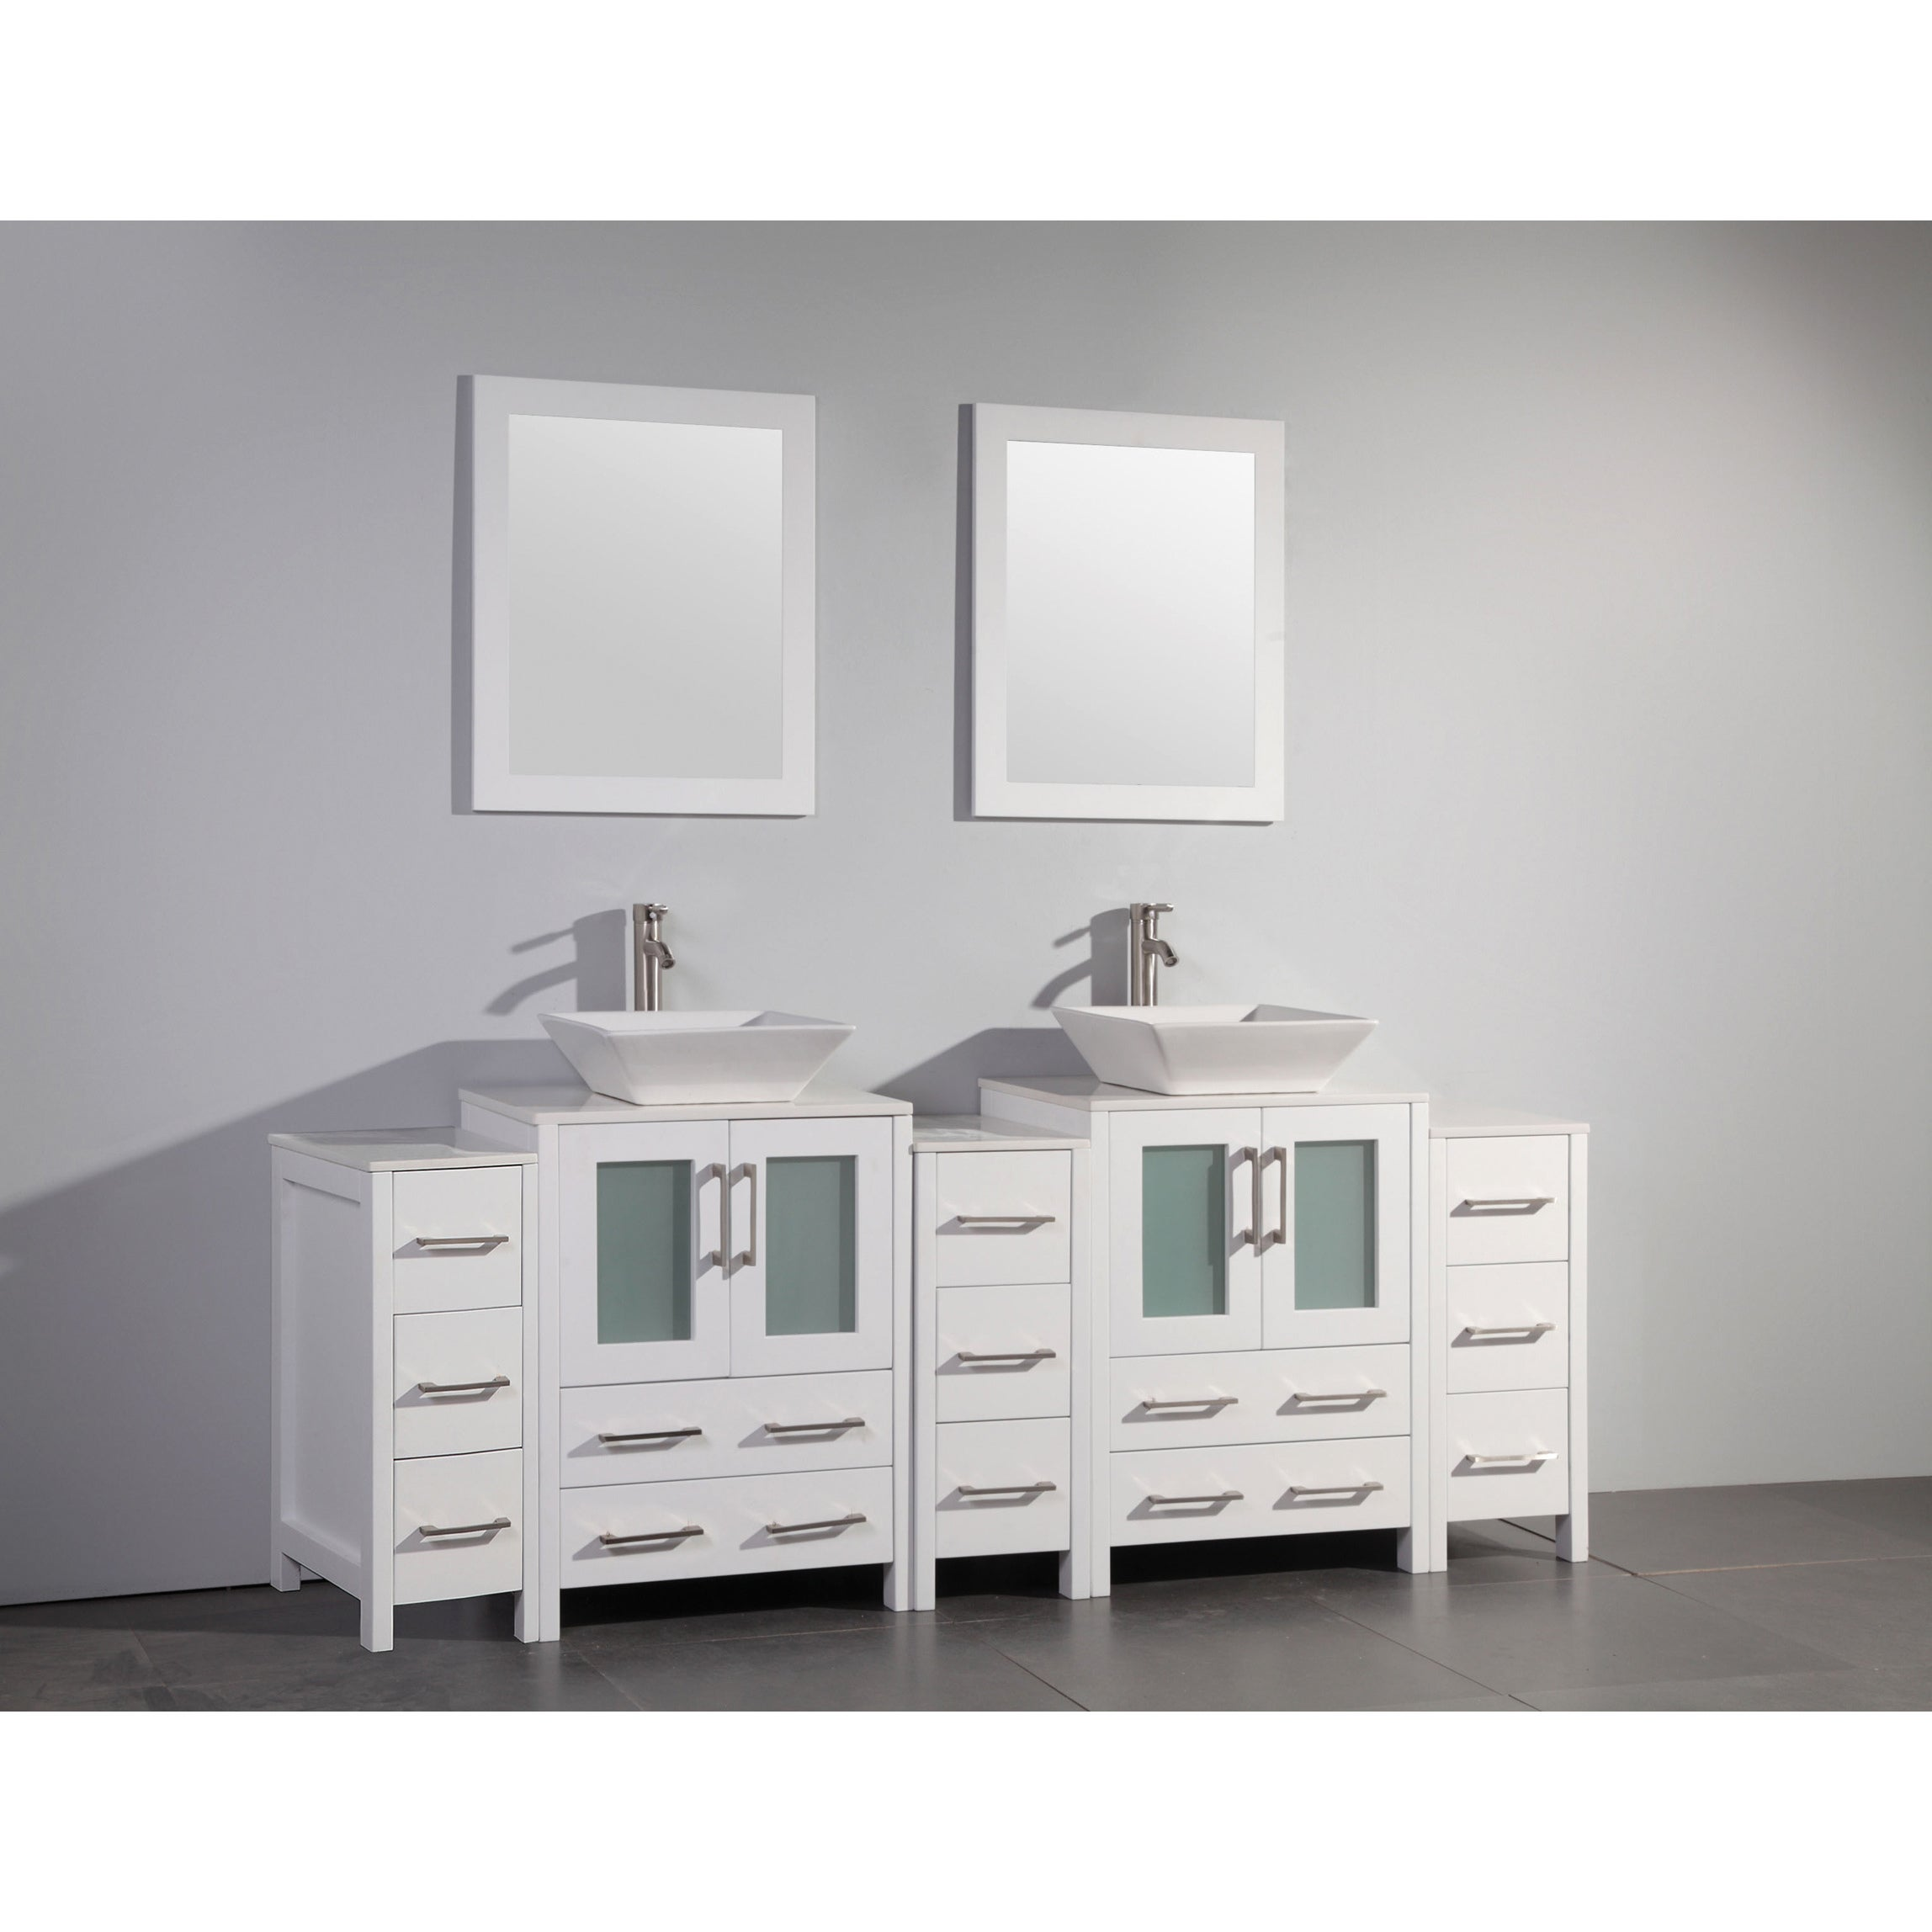 84 inch vanity top double sink. Vanity Art 84 Inch Double Sink Bathroom Set With C  inch vanity top double sink Compare Prices at Nextag